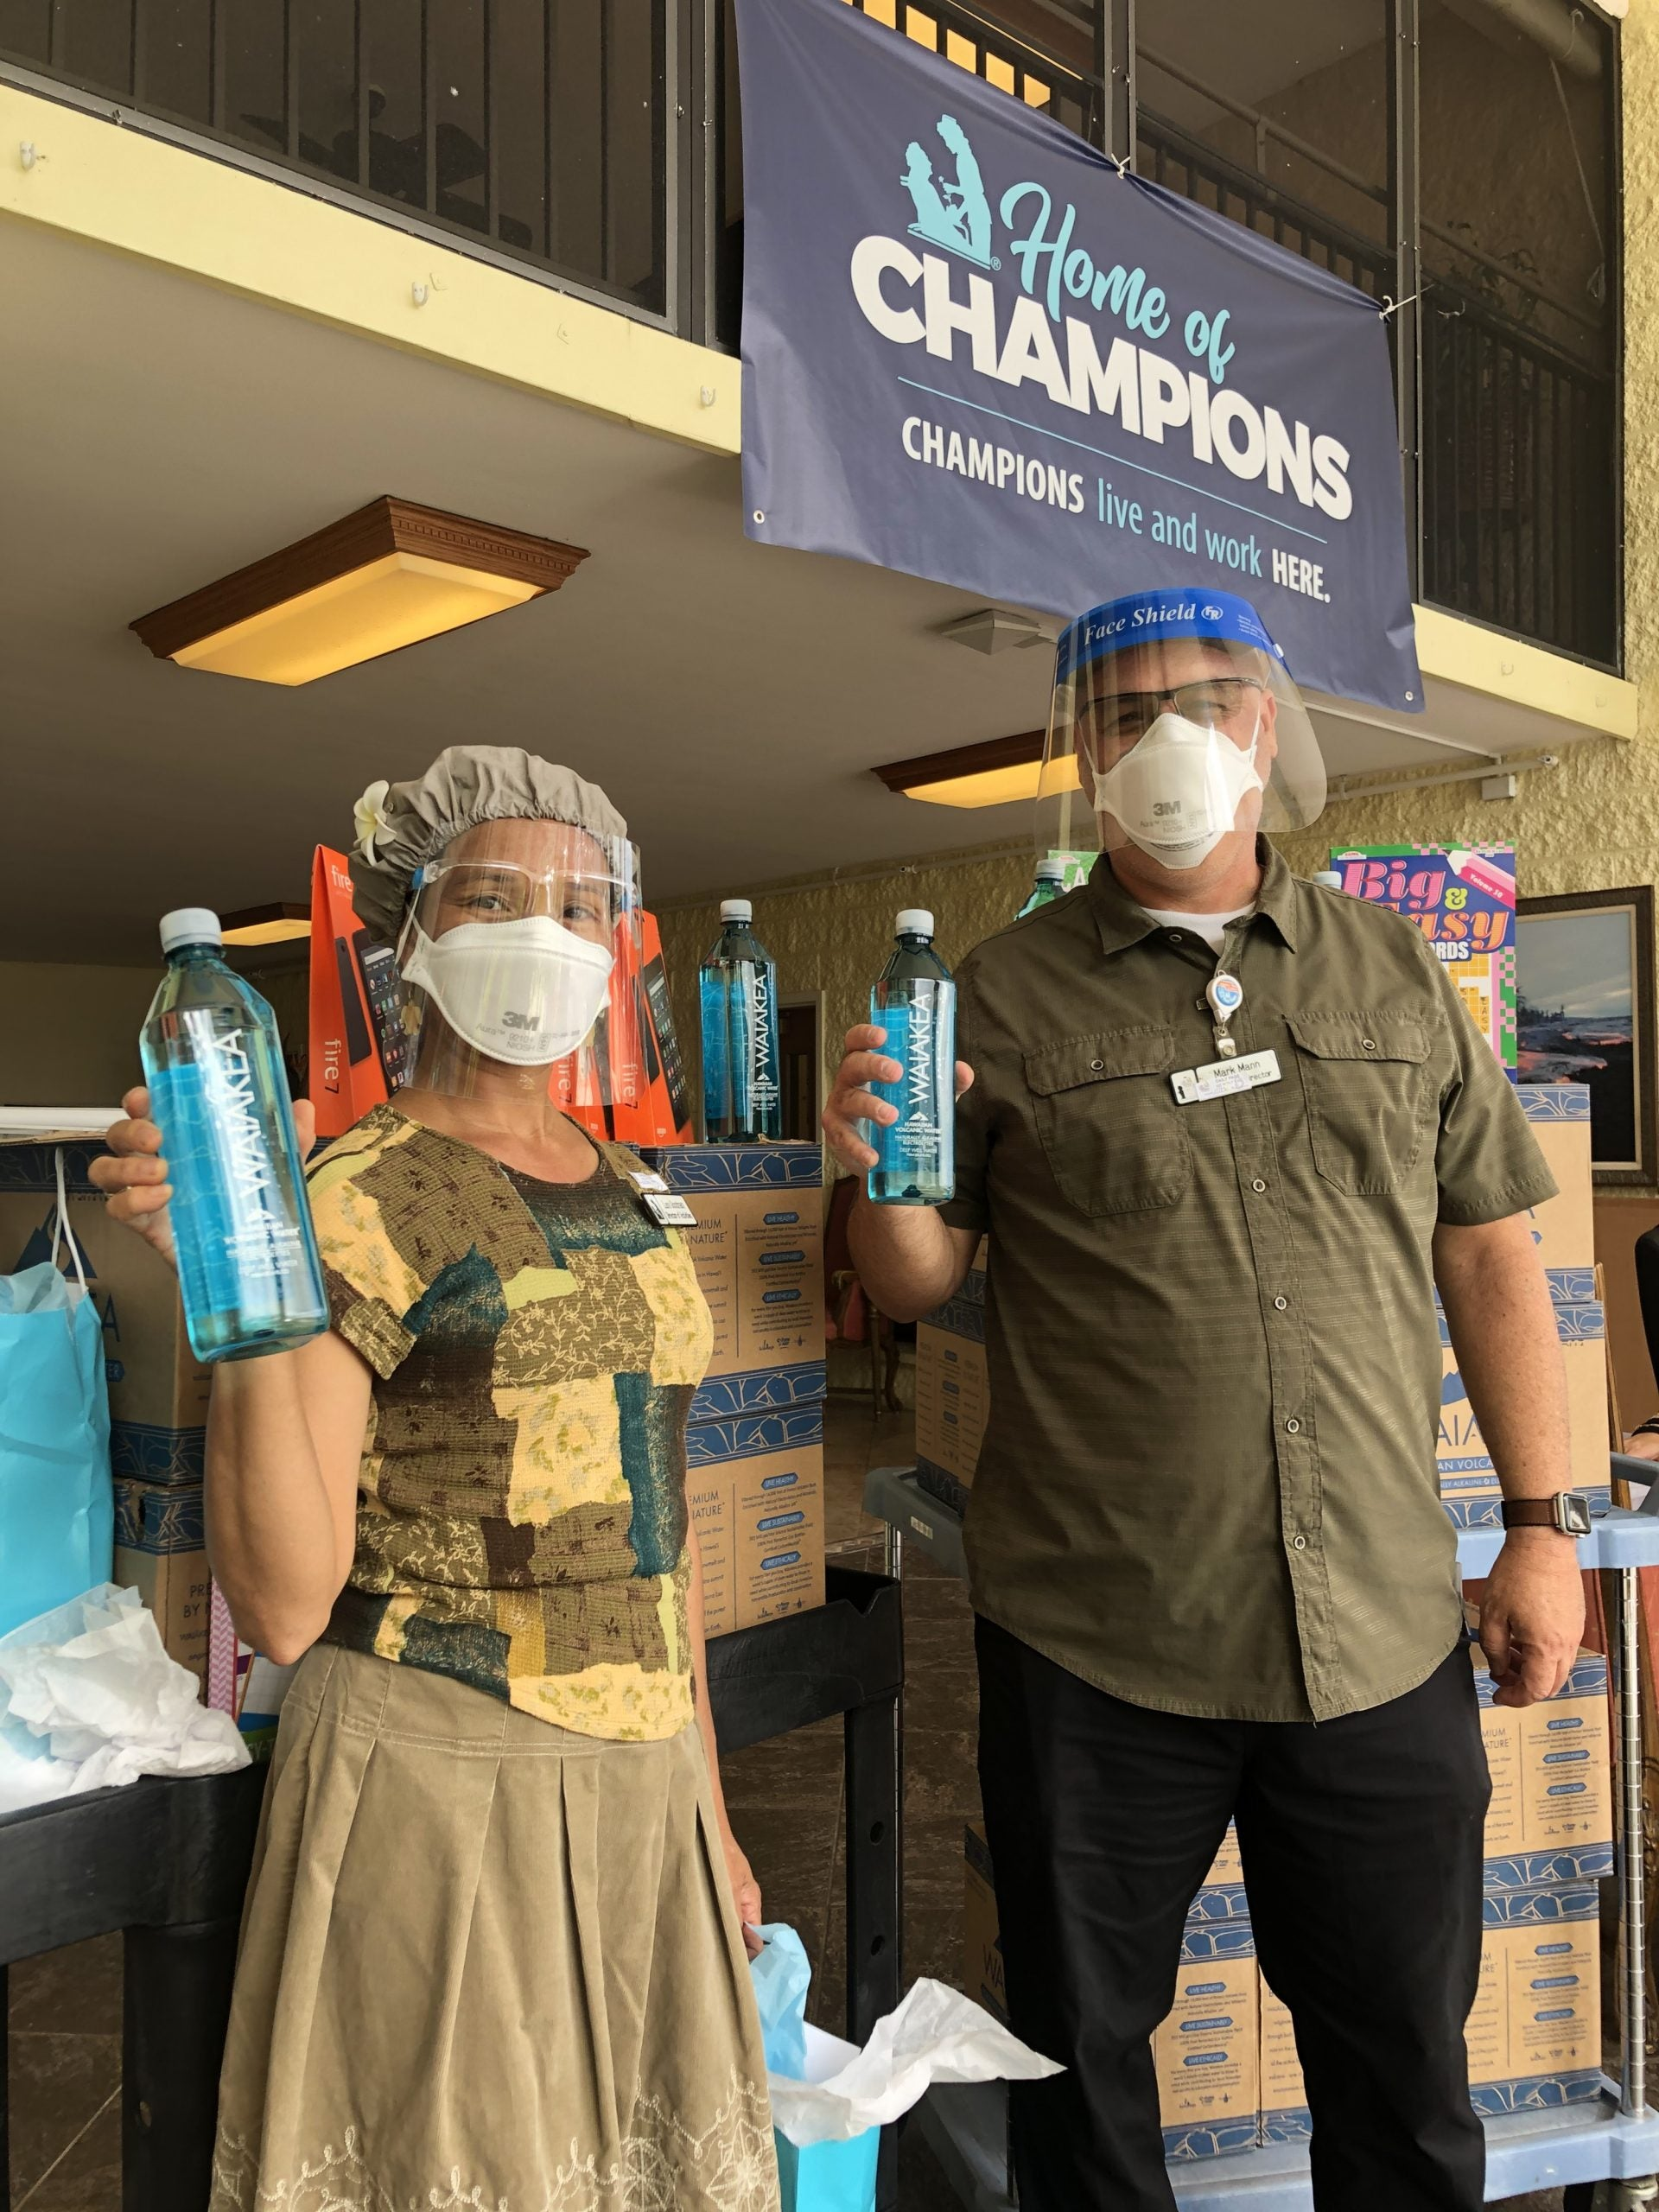 Man and woman each holding a bottle of Waiakea water